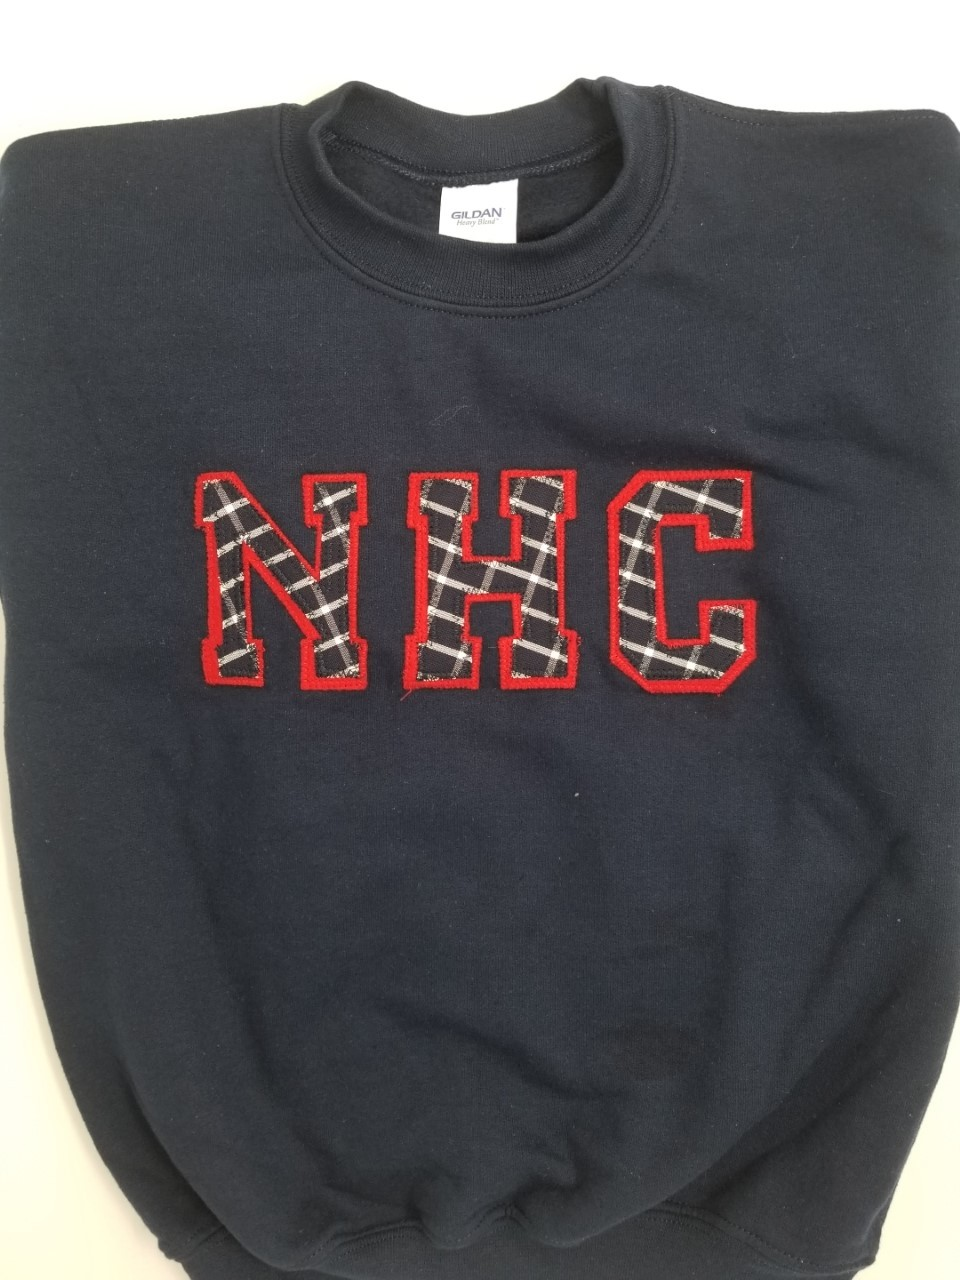 Sweatshirt with Applique Letters